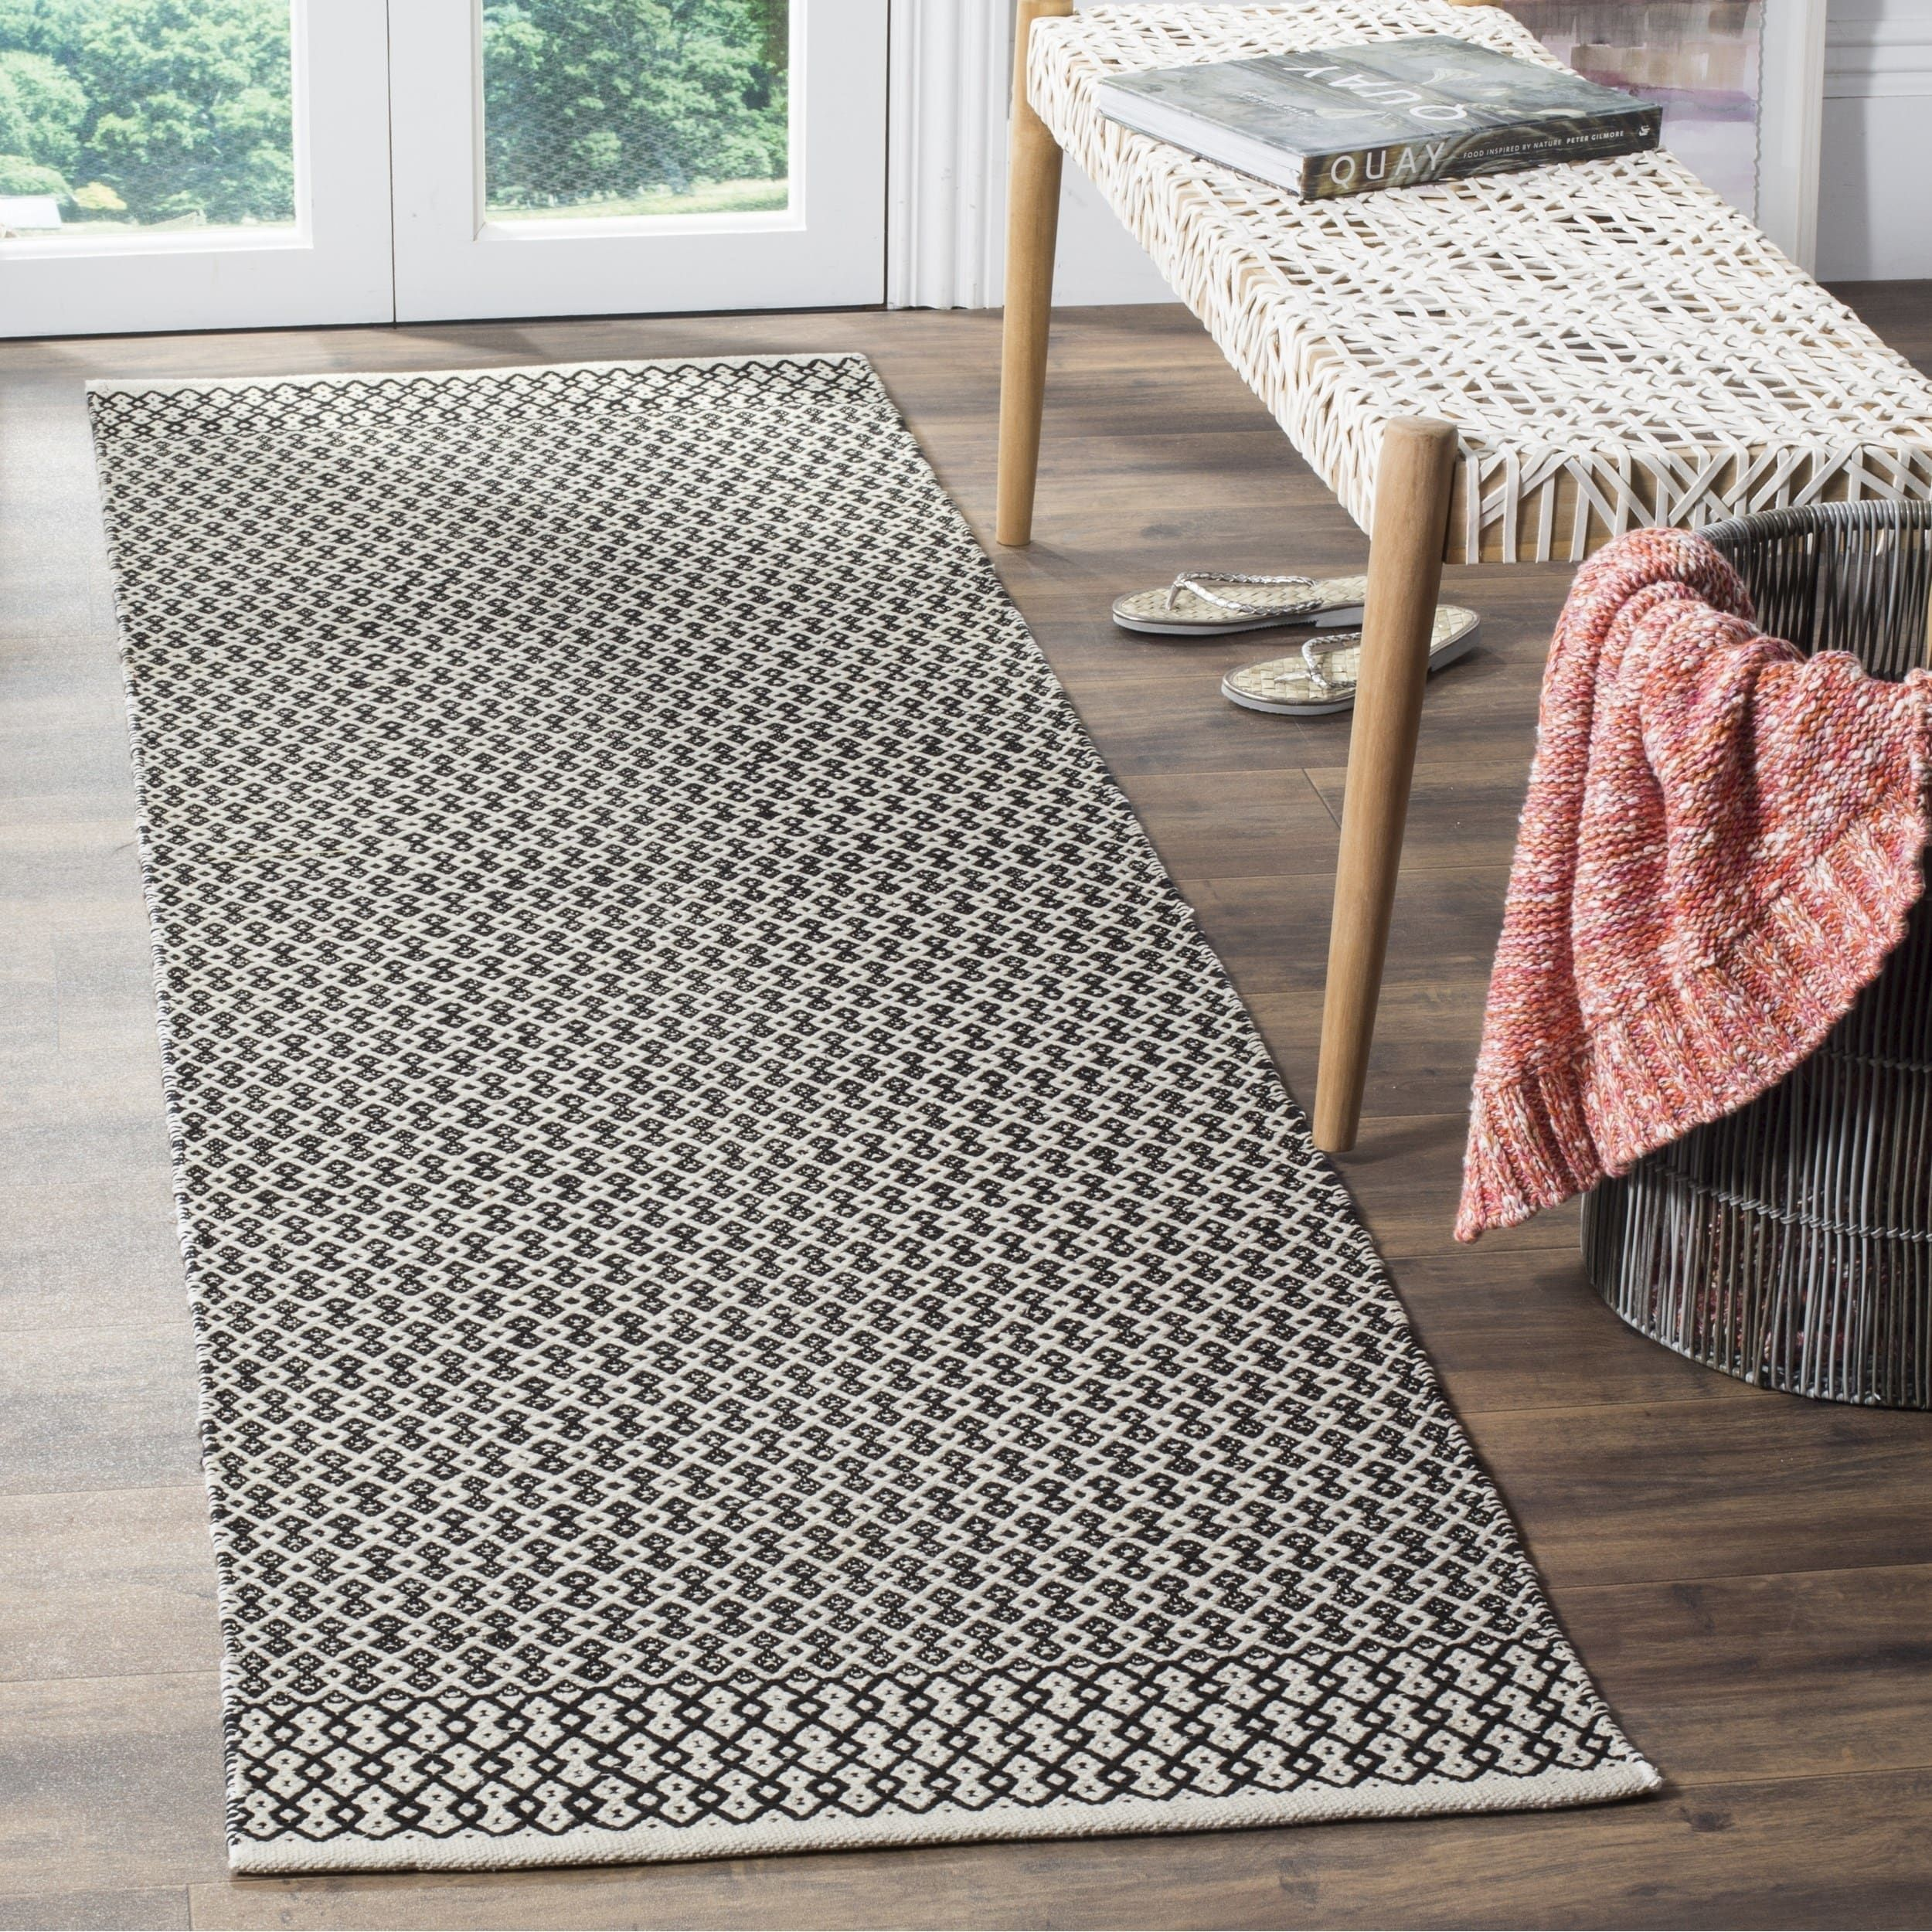 Safavieh Montauk Transitional Geometric Hand Woven Cotton Ivory Black Runner Rug 2